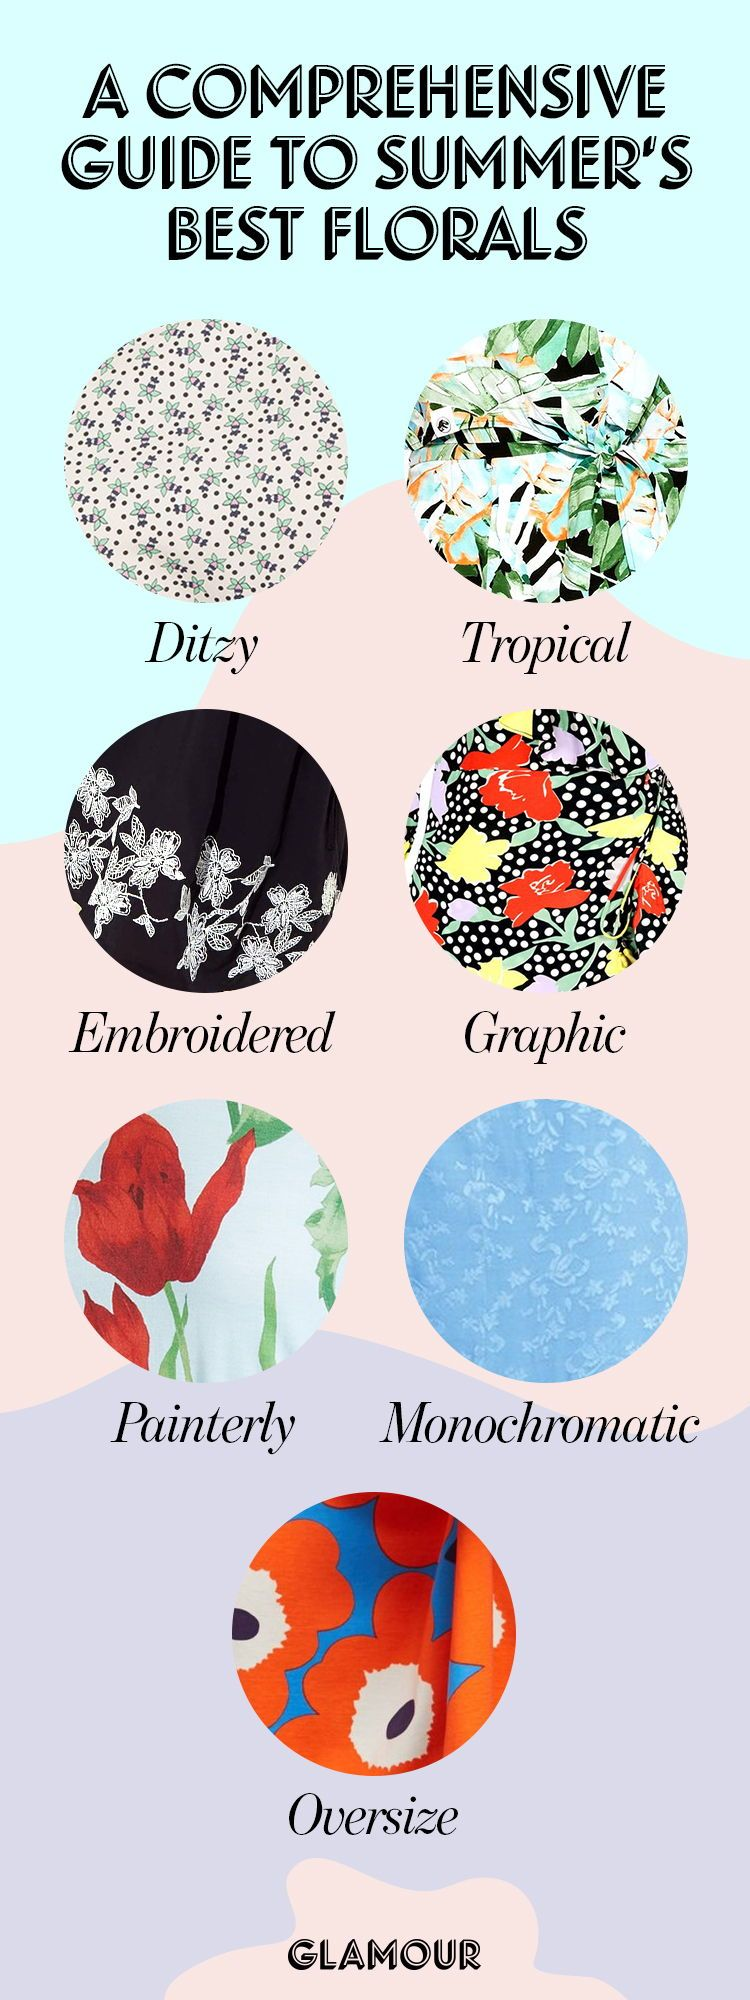 ec0b78065d A Comprehensive Guide to Summer s Best Florals in 2018